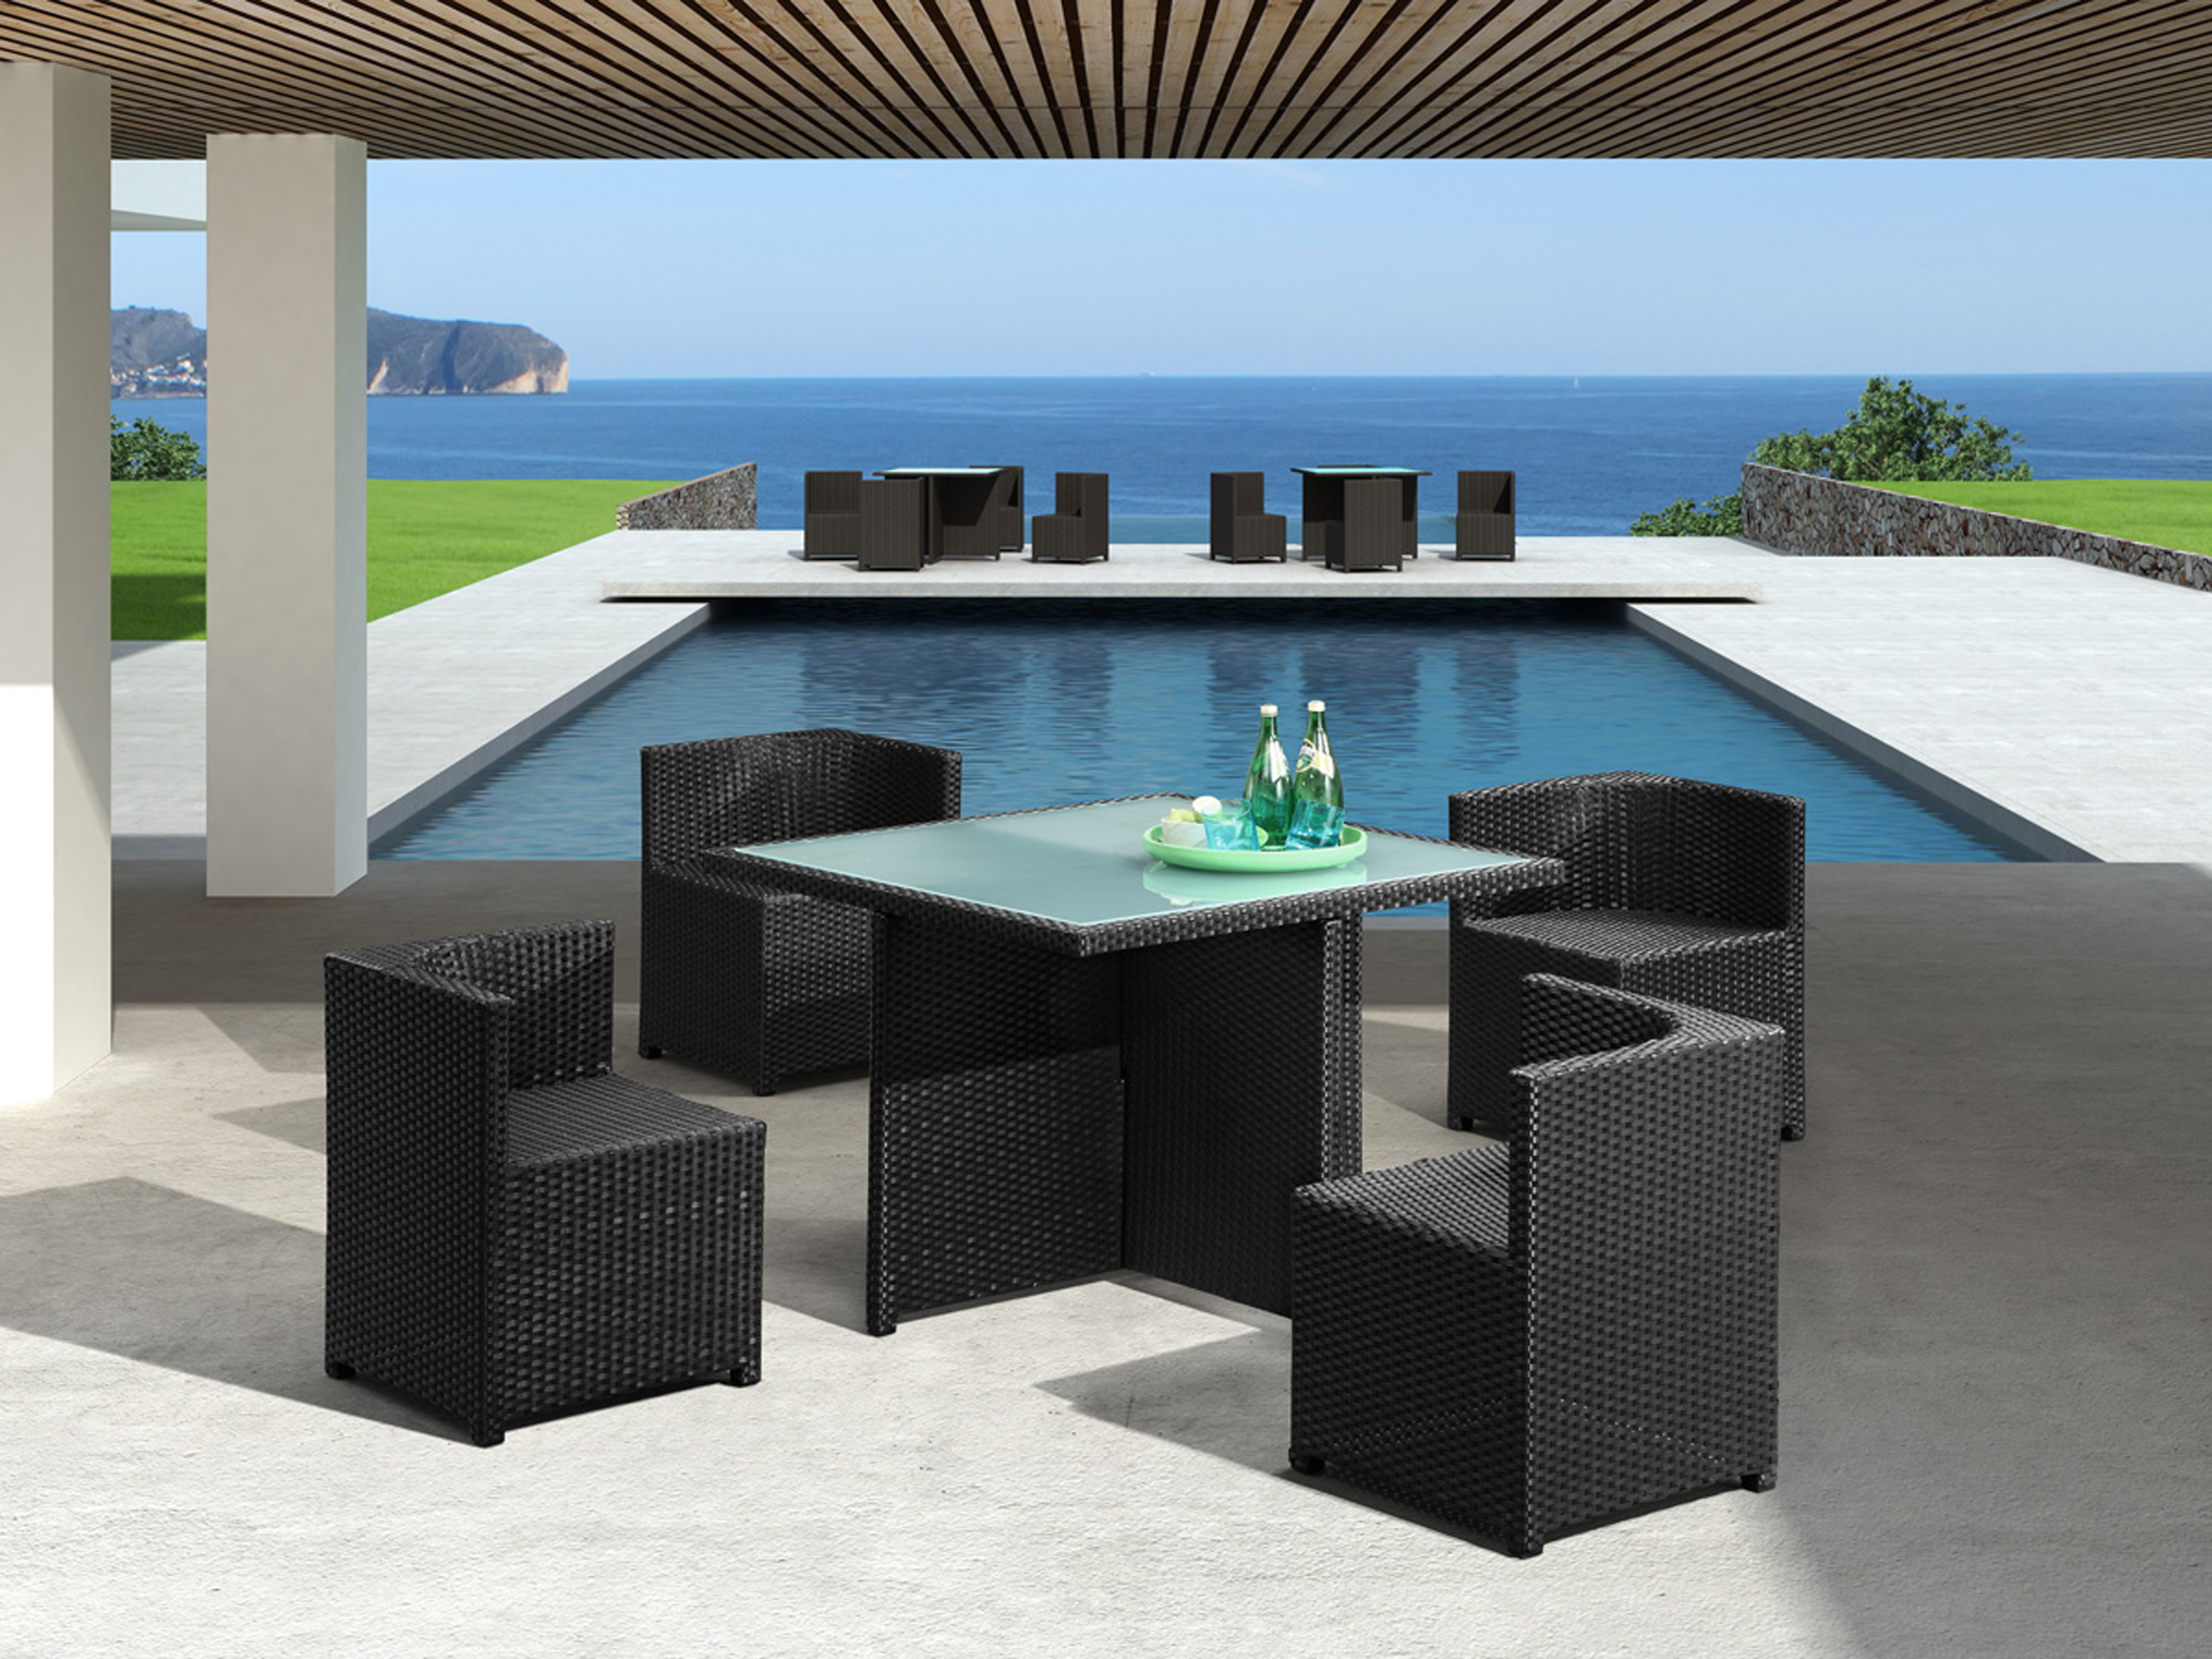 Lovely Outdoor Dining Set Idea With Black Table With Green Bottles And Black Chairs Admirable Outdoor Dining Set Ideas (Image 7 of 20)